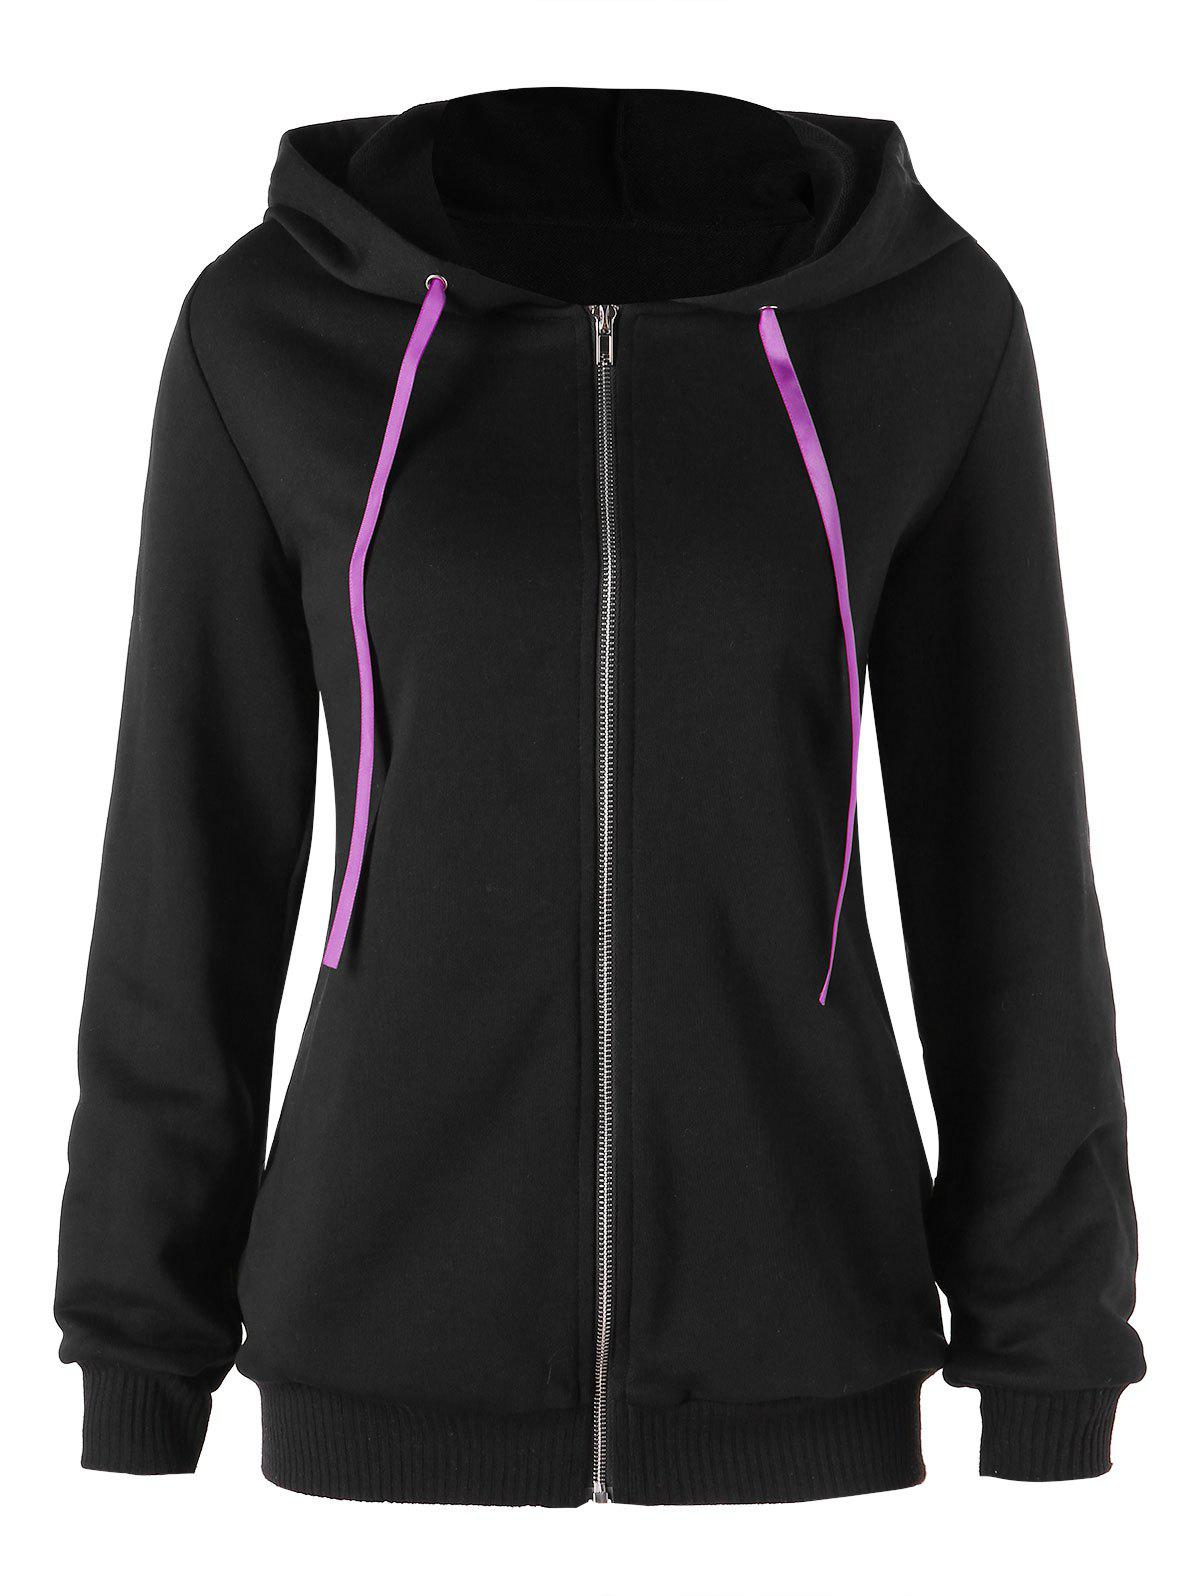 Lace Up Drawstring Zip Up Hoodie